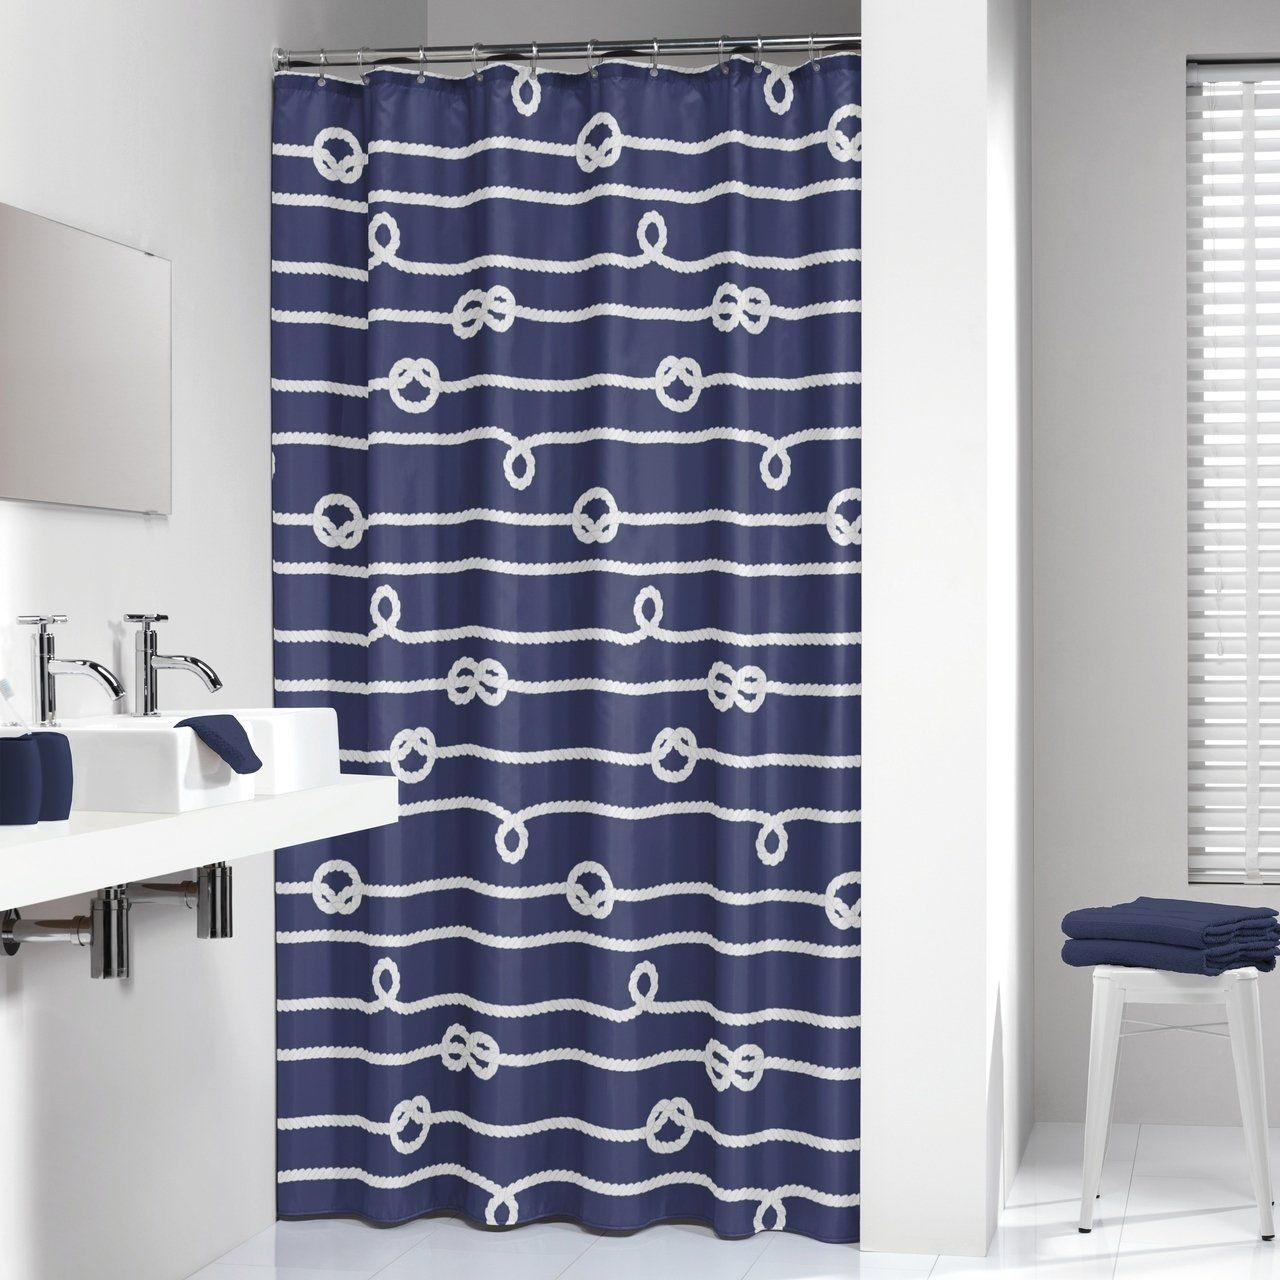 Sealskin Extra Long Shower Curtain 78 X 72 Inch Nautical Rope Blue